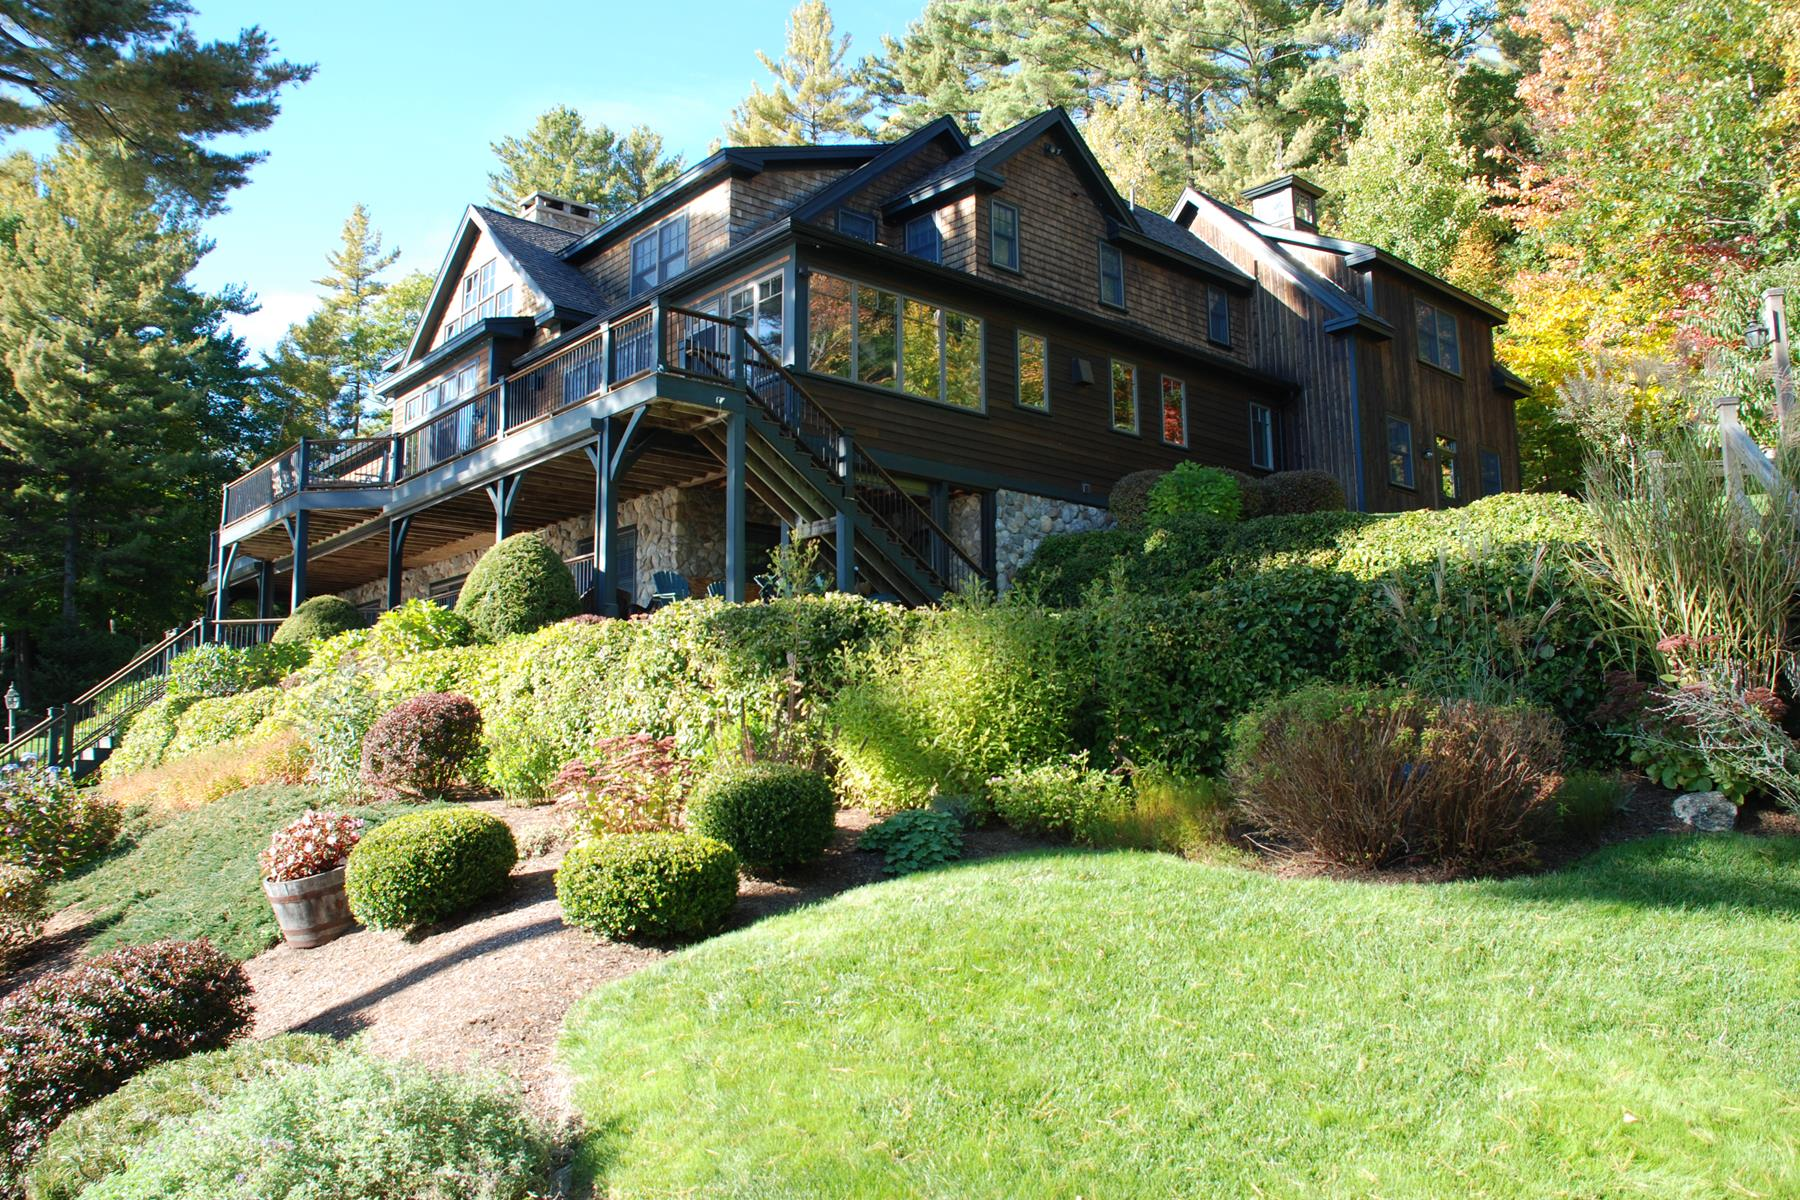 Single Family Home for Sale at 36 Garnet Hill Road, Sunapee 36 Garnet Hill Rd Sunapee, New Hampshire 03782 United States